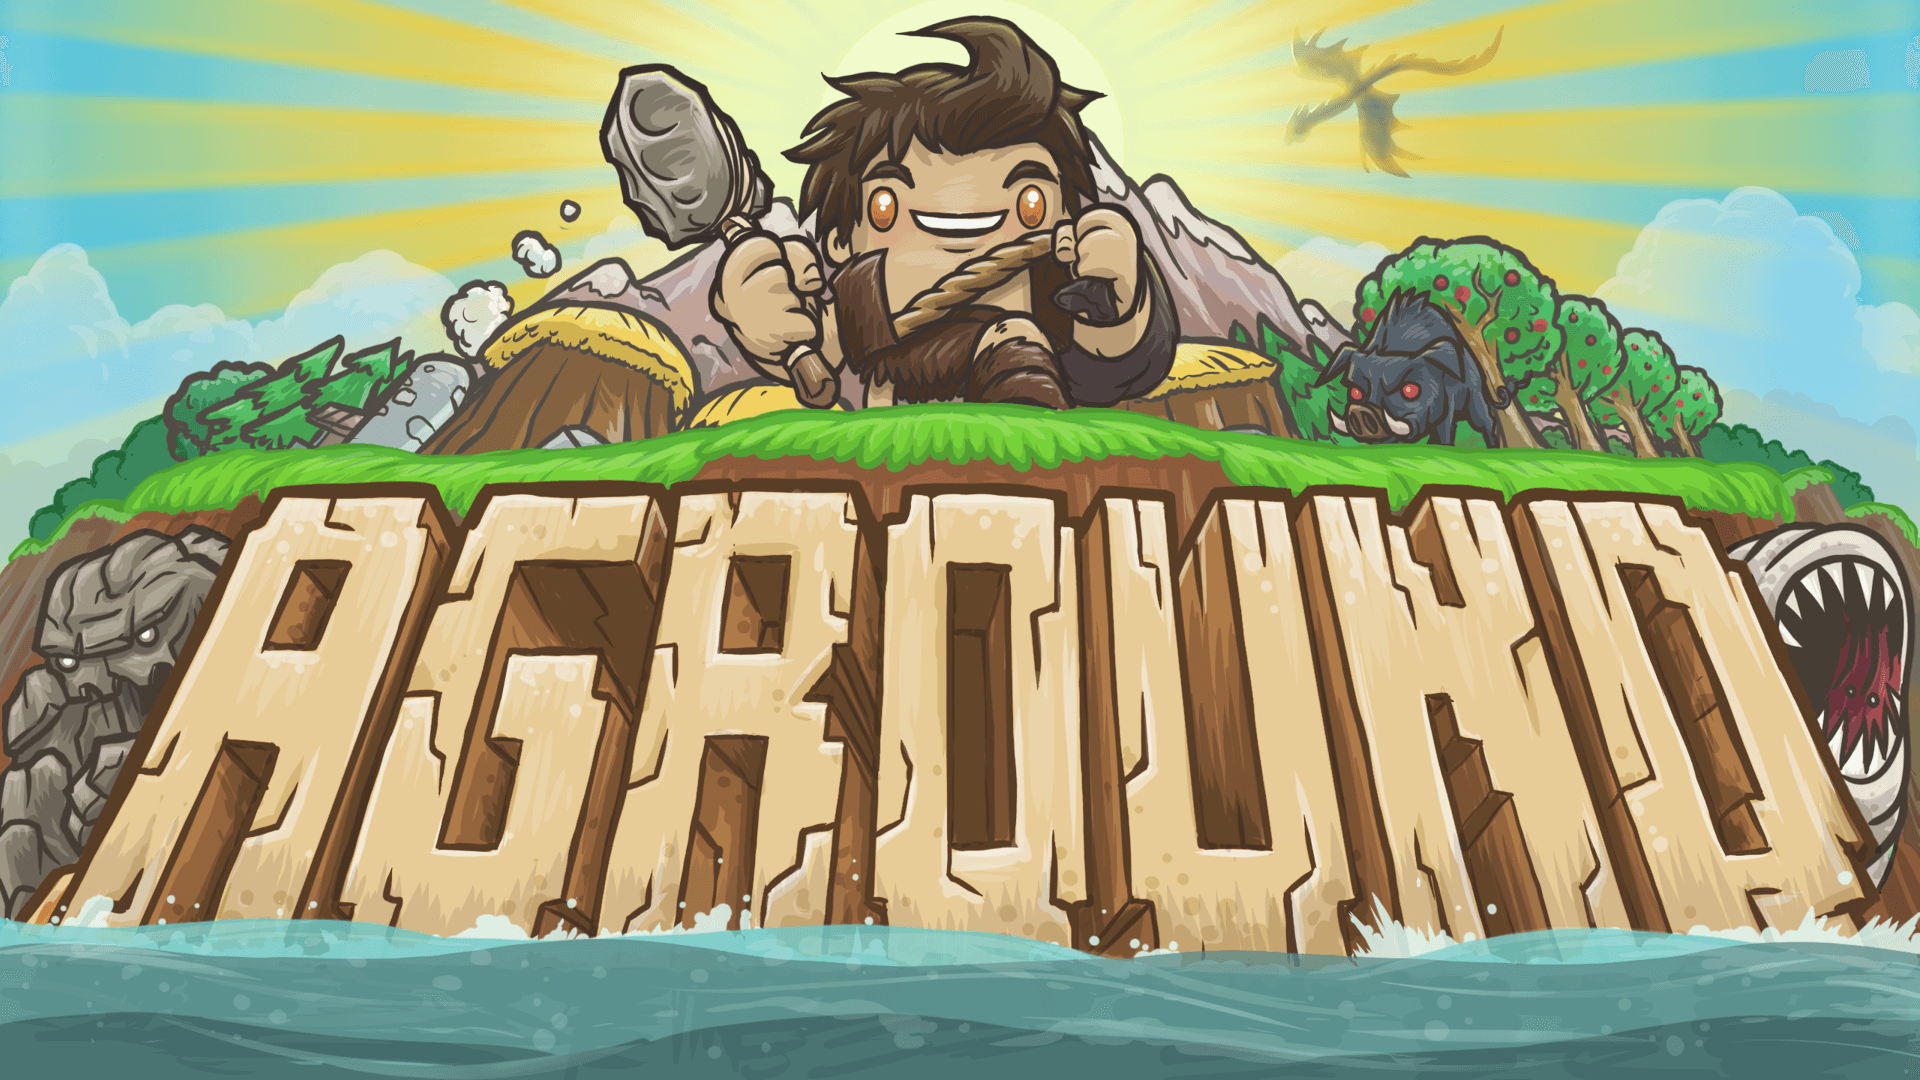 Aground Review: Starting from the Bottom